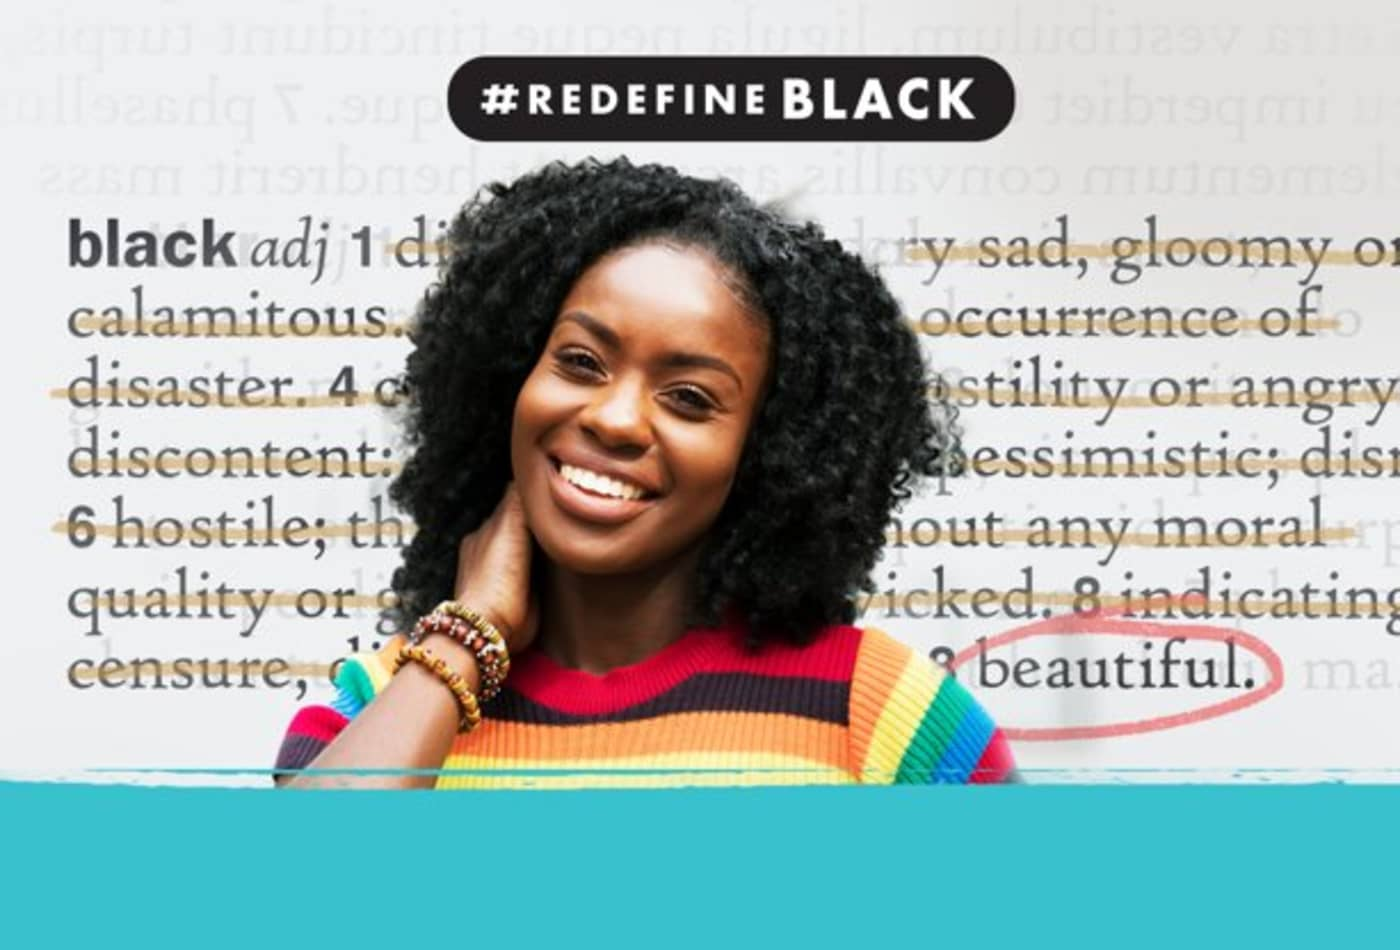 Procter and Gamble wants to redefine the word 'black'